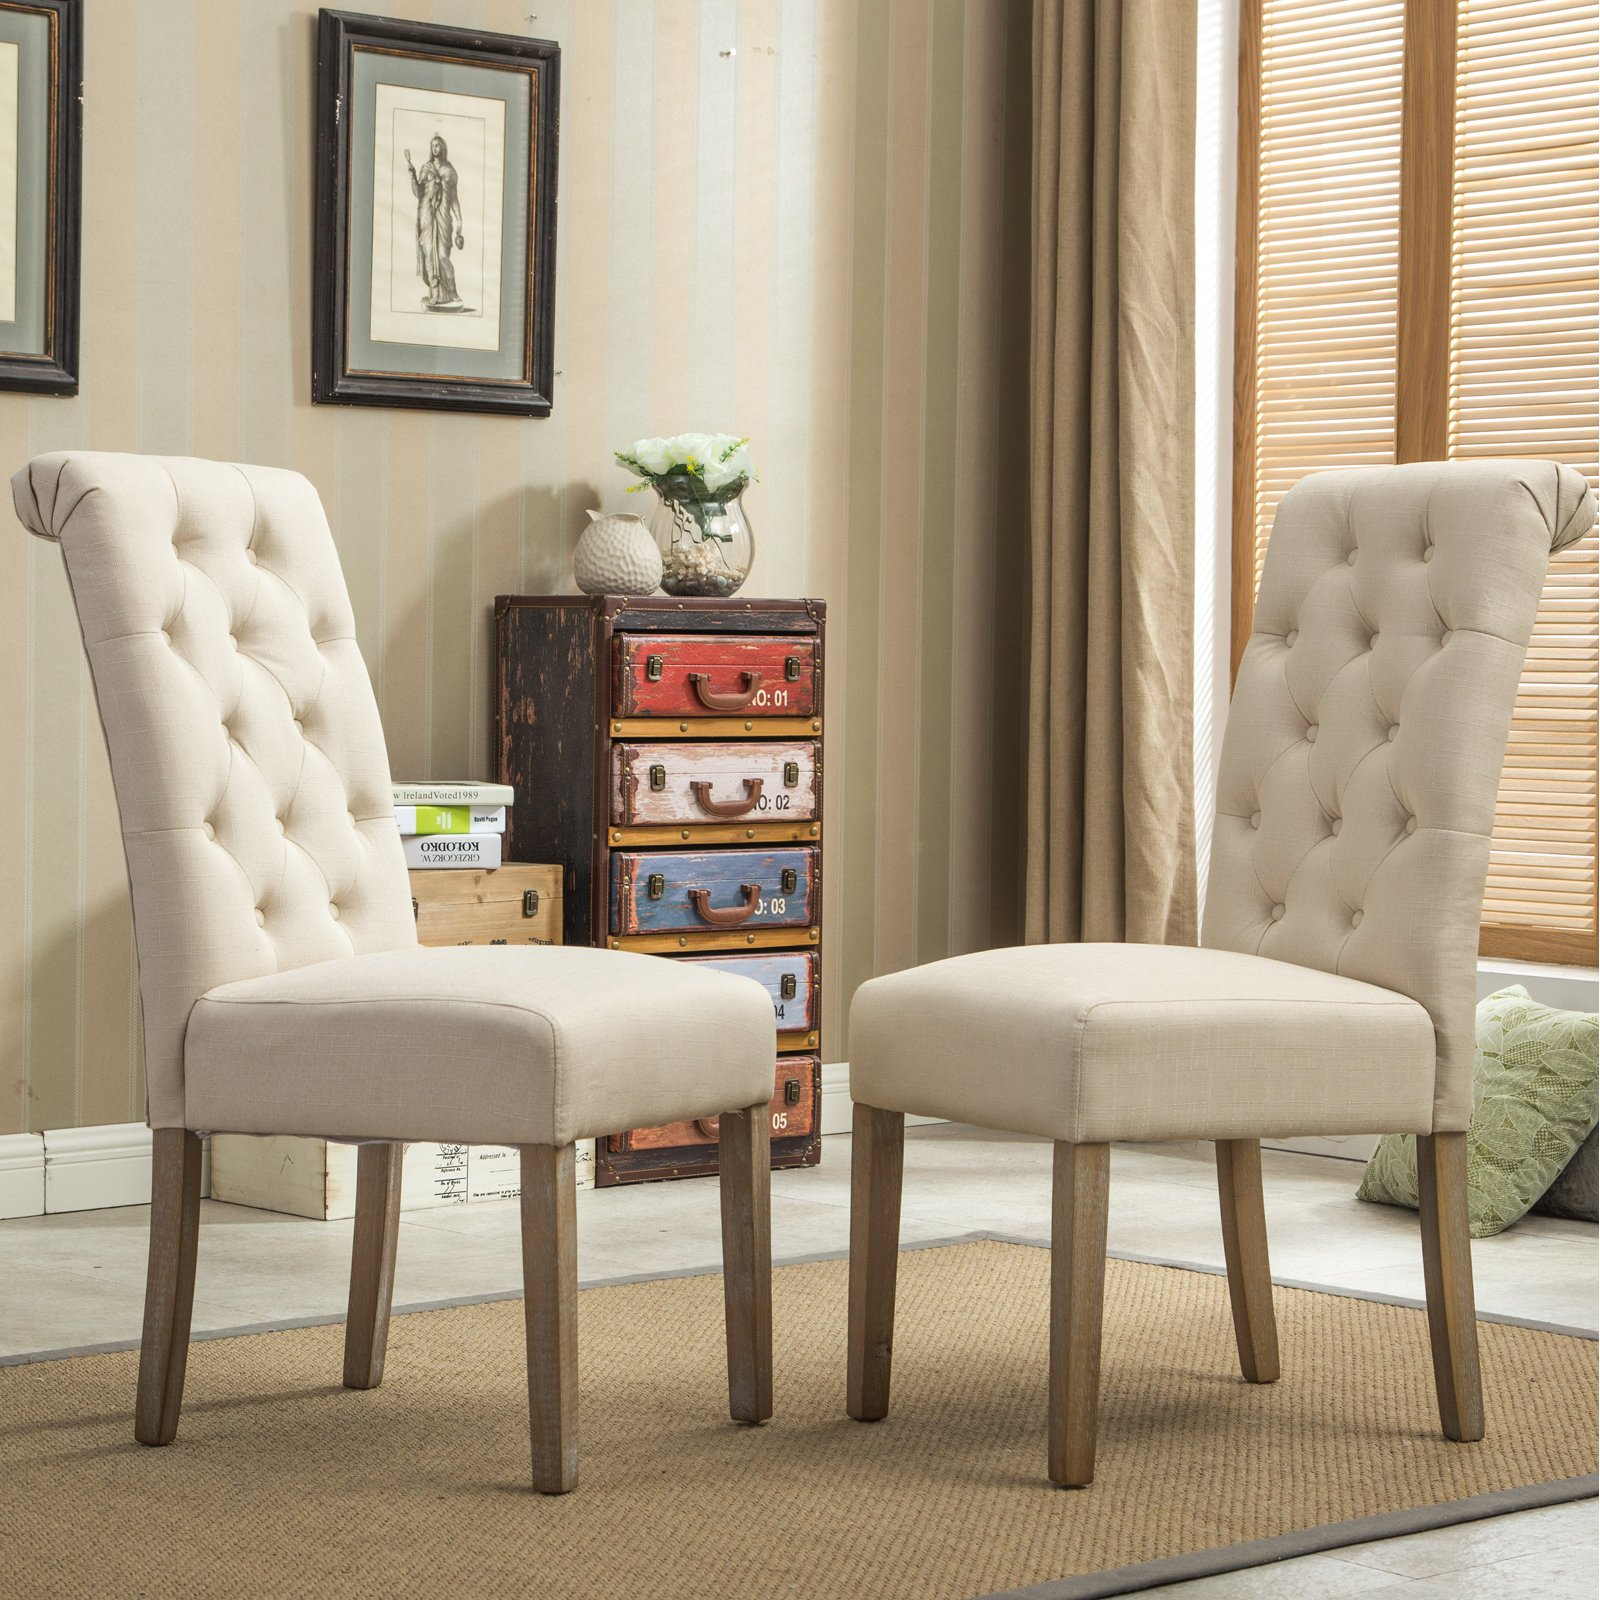 solid wood chairs stretch dining chair covers uk roundhill furniture habit tufted parsons tan set of 2